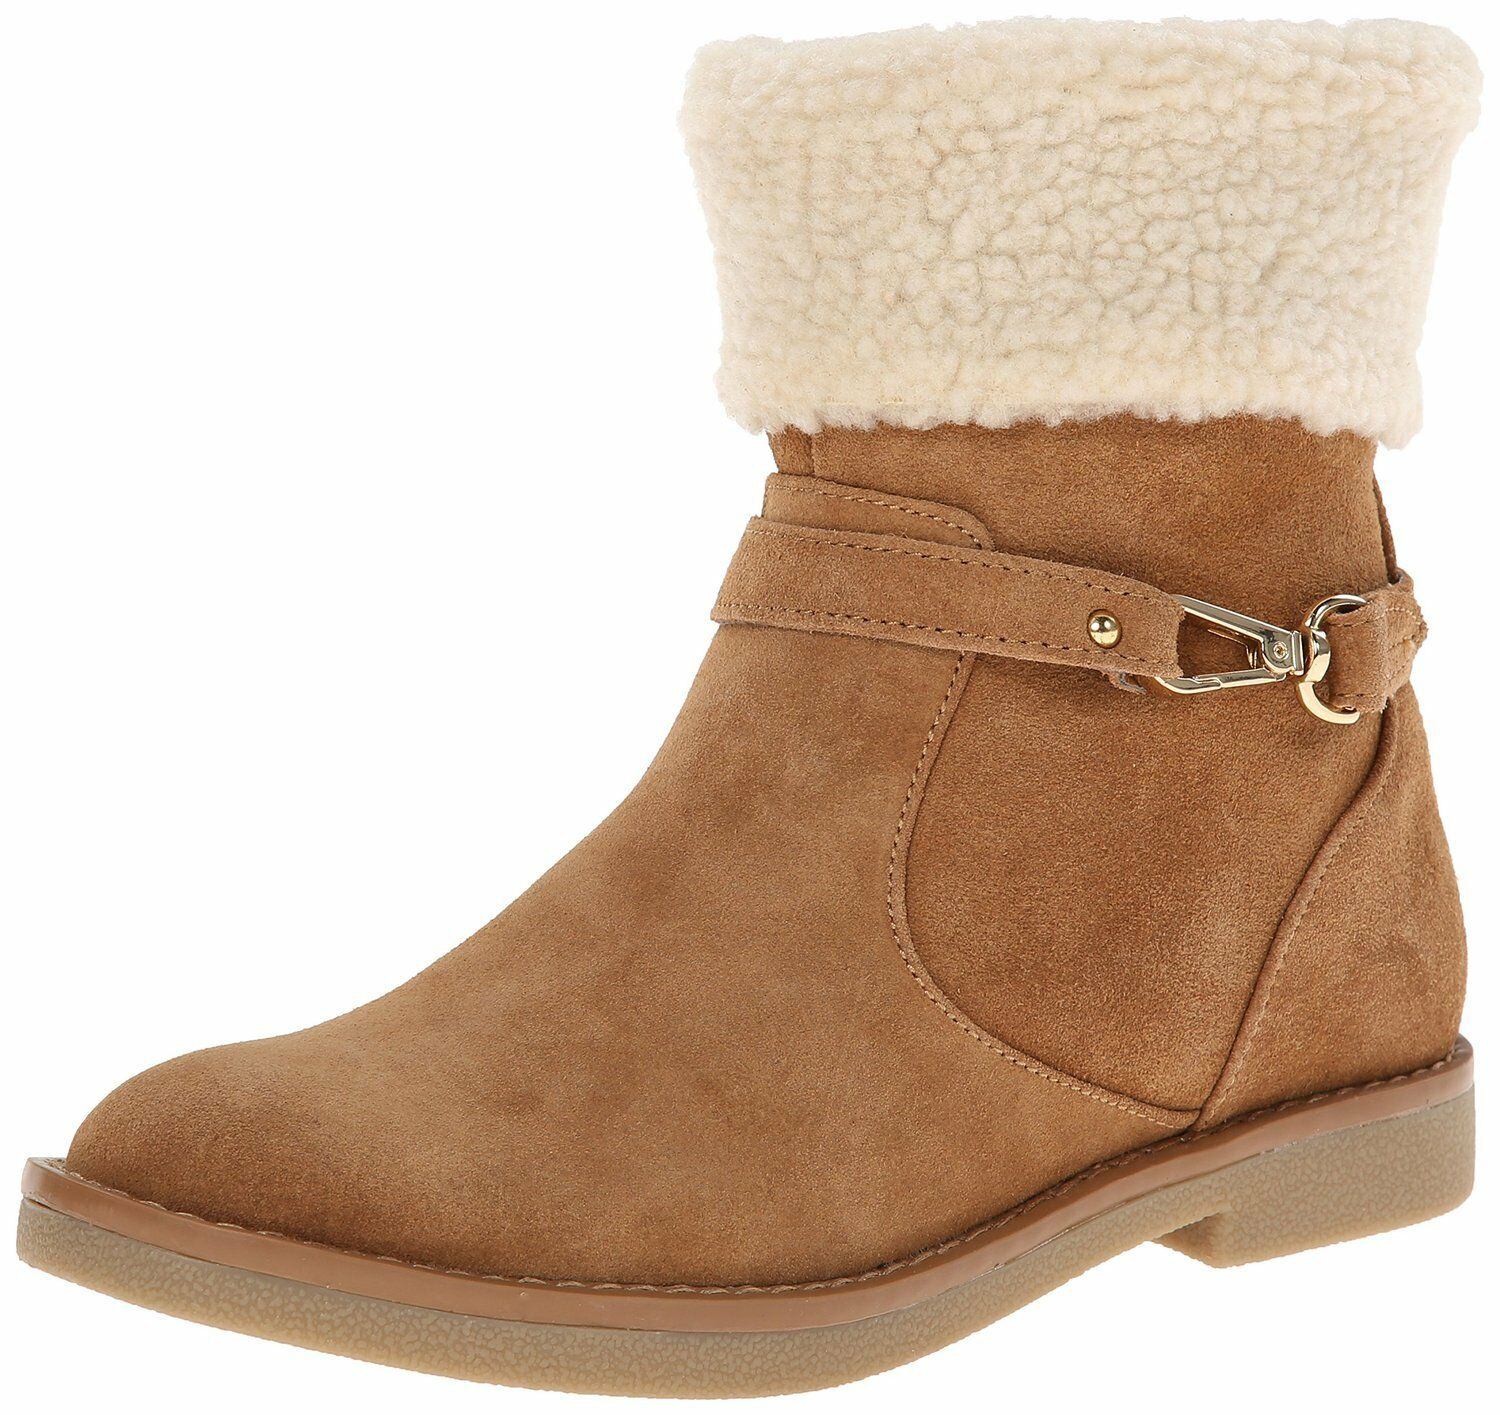 Tommy Hilfiger NESSY Camel Suede Snowboot w/Shearling Lining & Cuff, 5M - 99